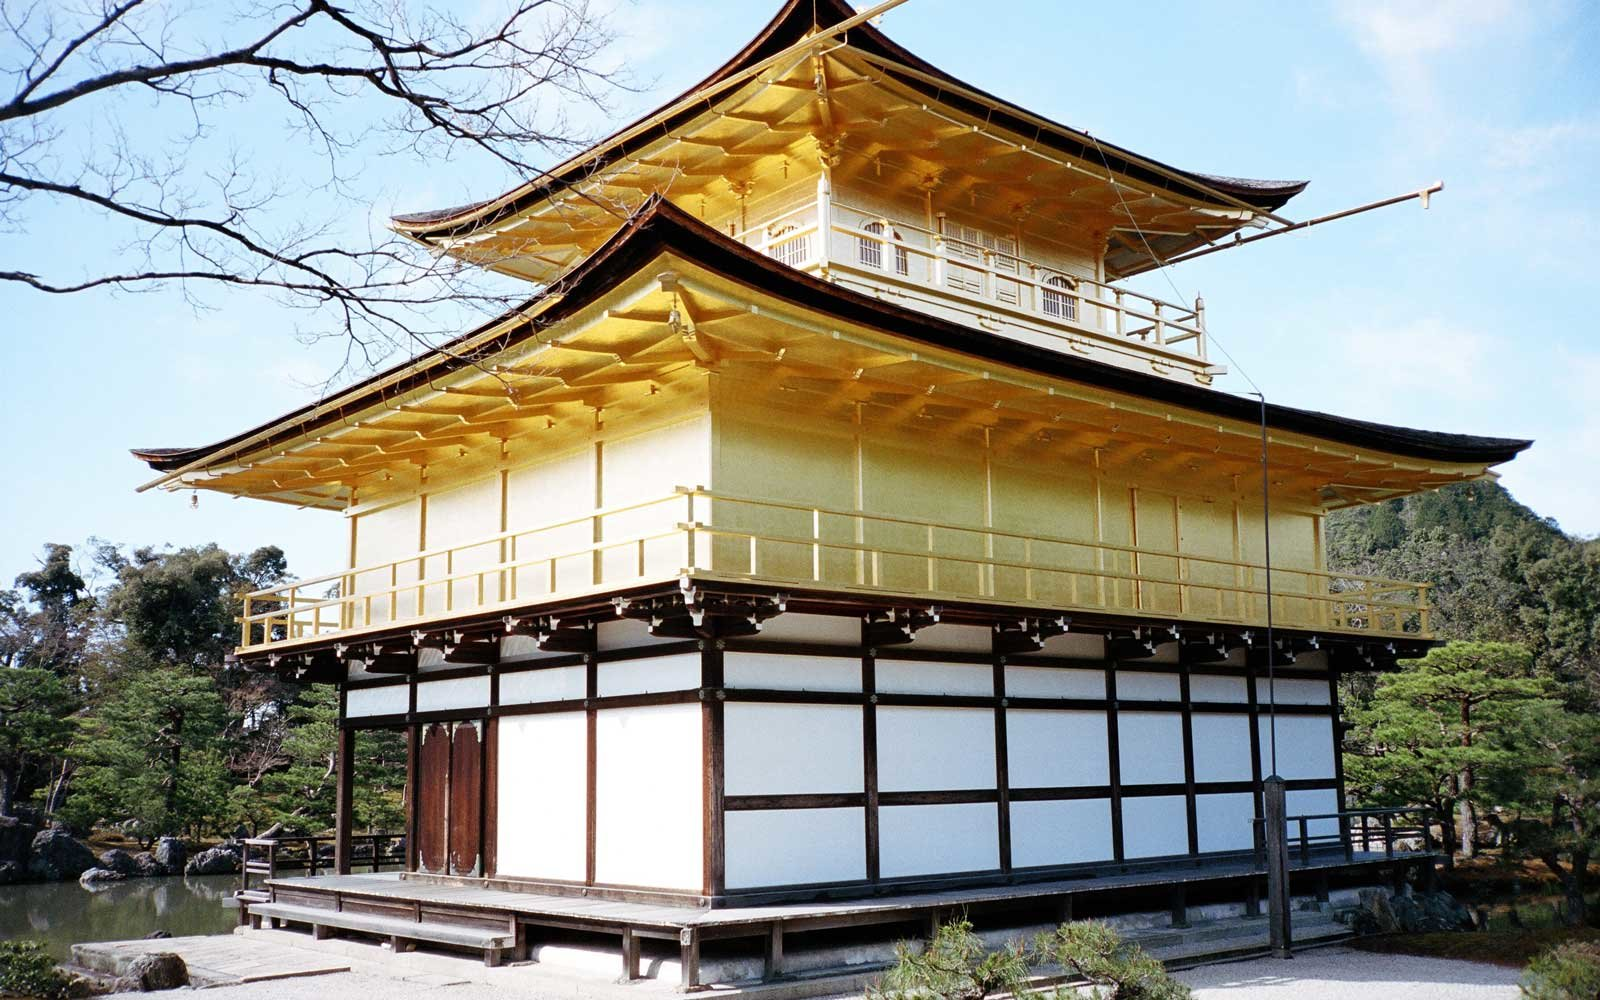 Kinkaku-ji golden temple in Japan